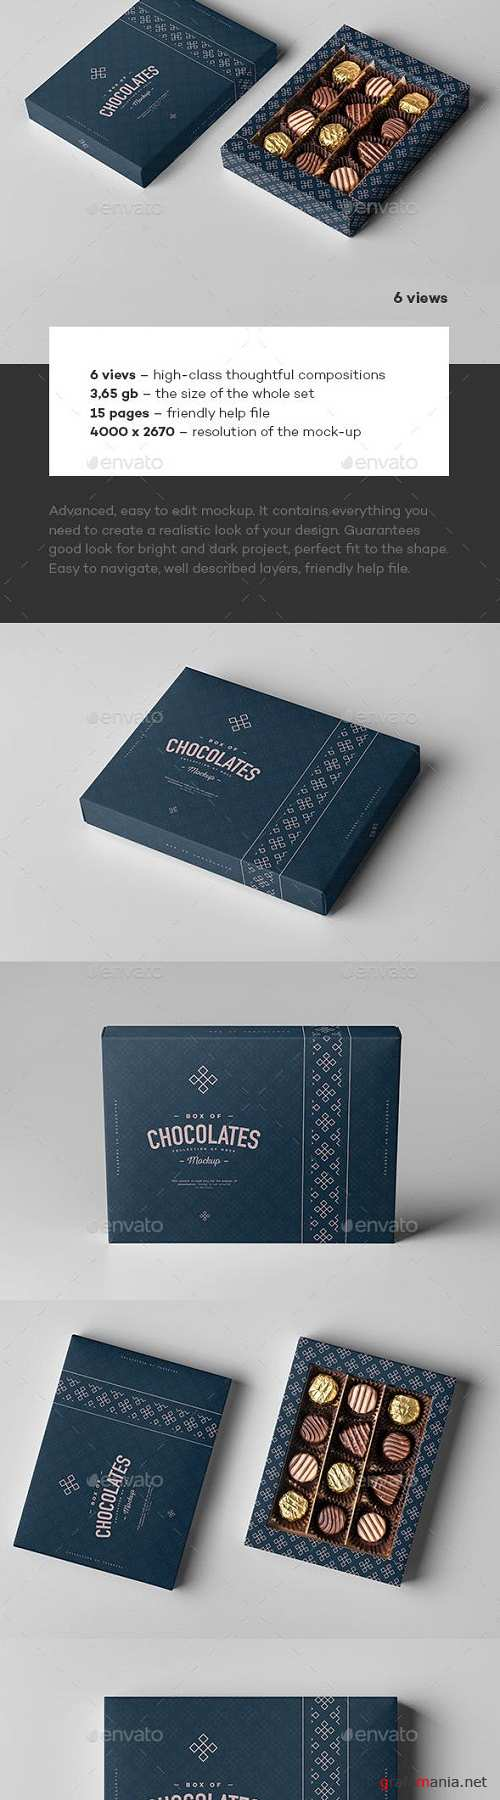 Box Of Chocolates Mock-up 23126932